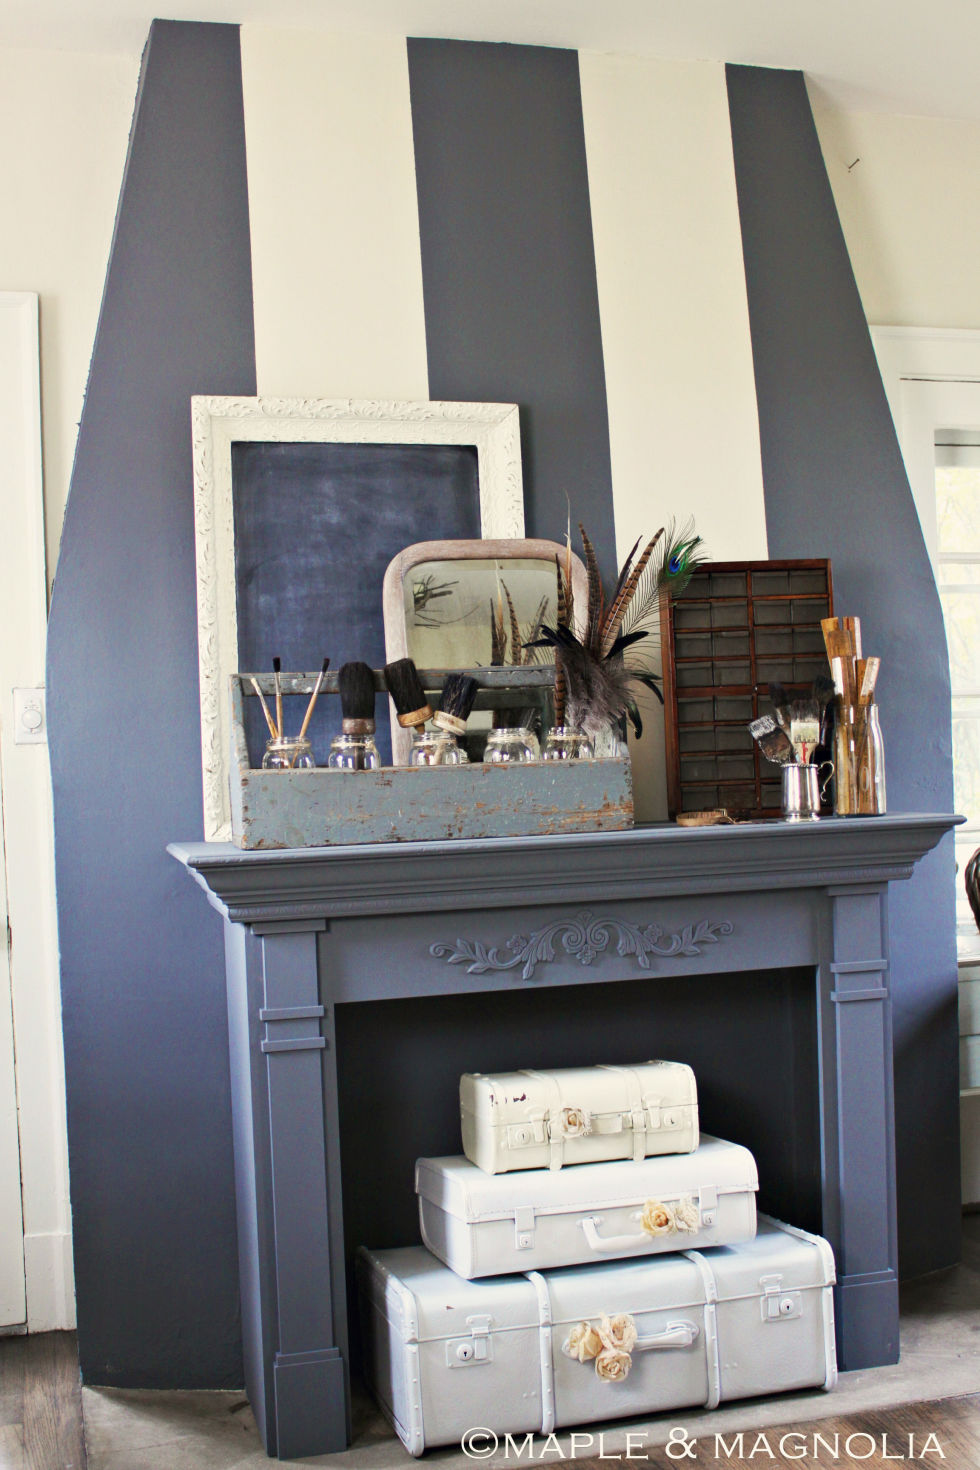 12 Brilliant Things to Do With Your Non-Working Fireplace